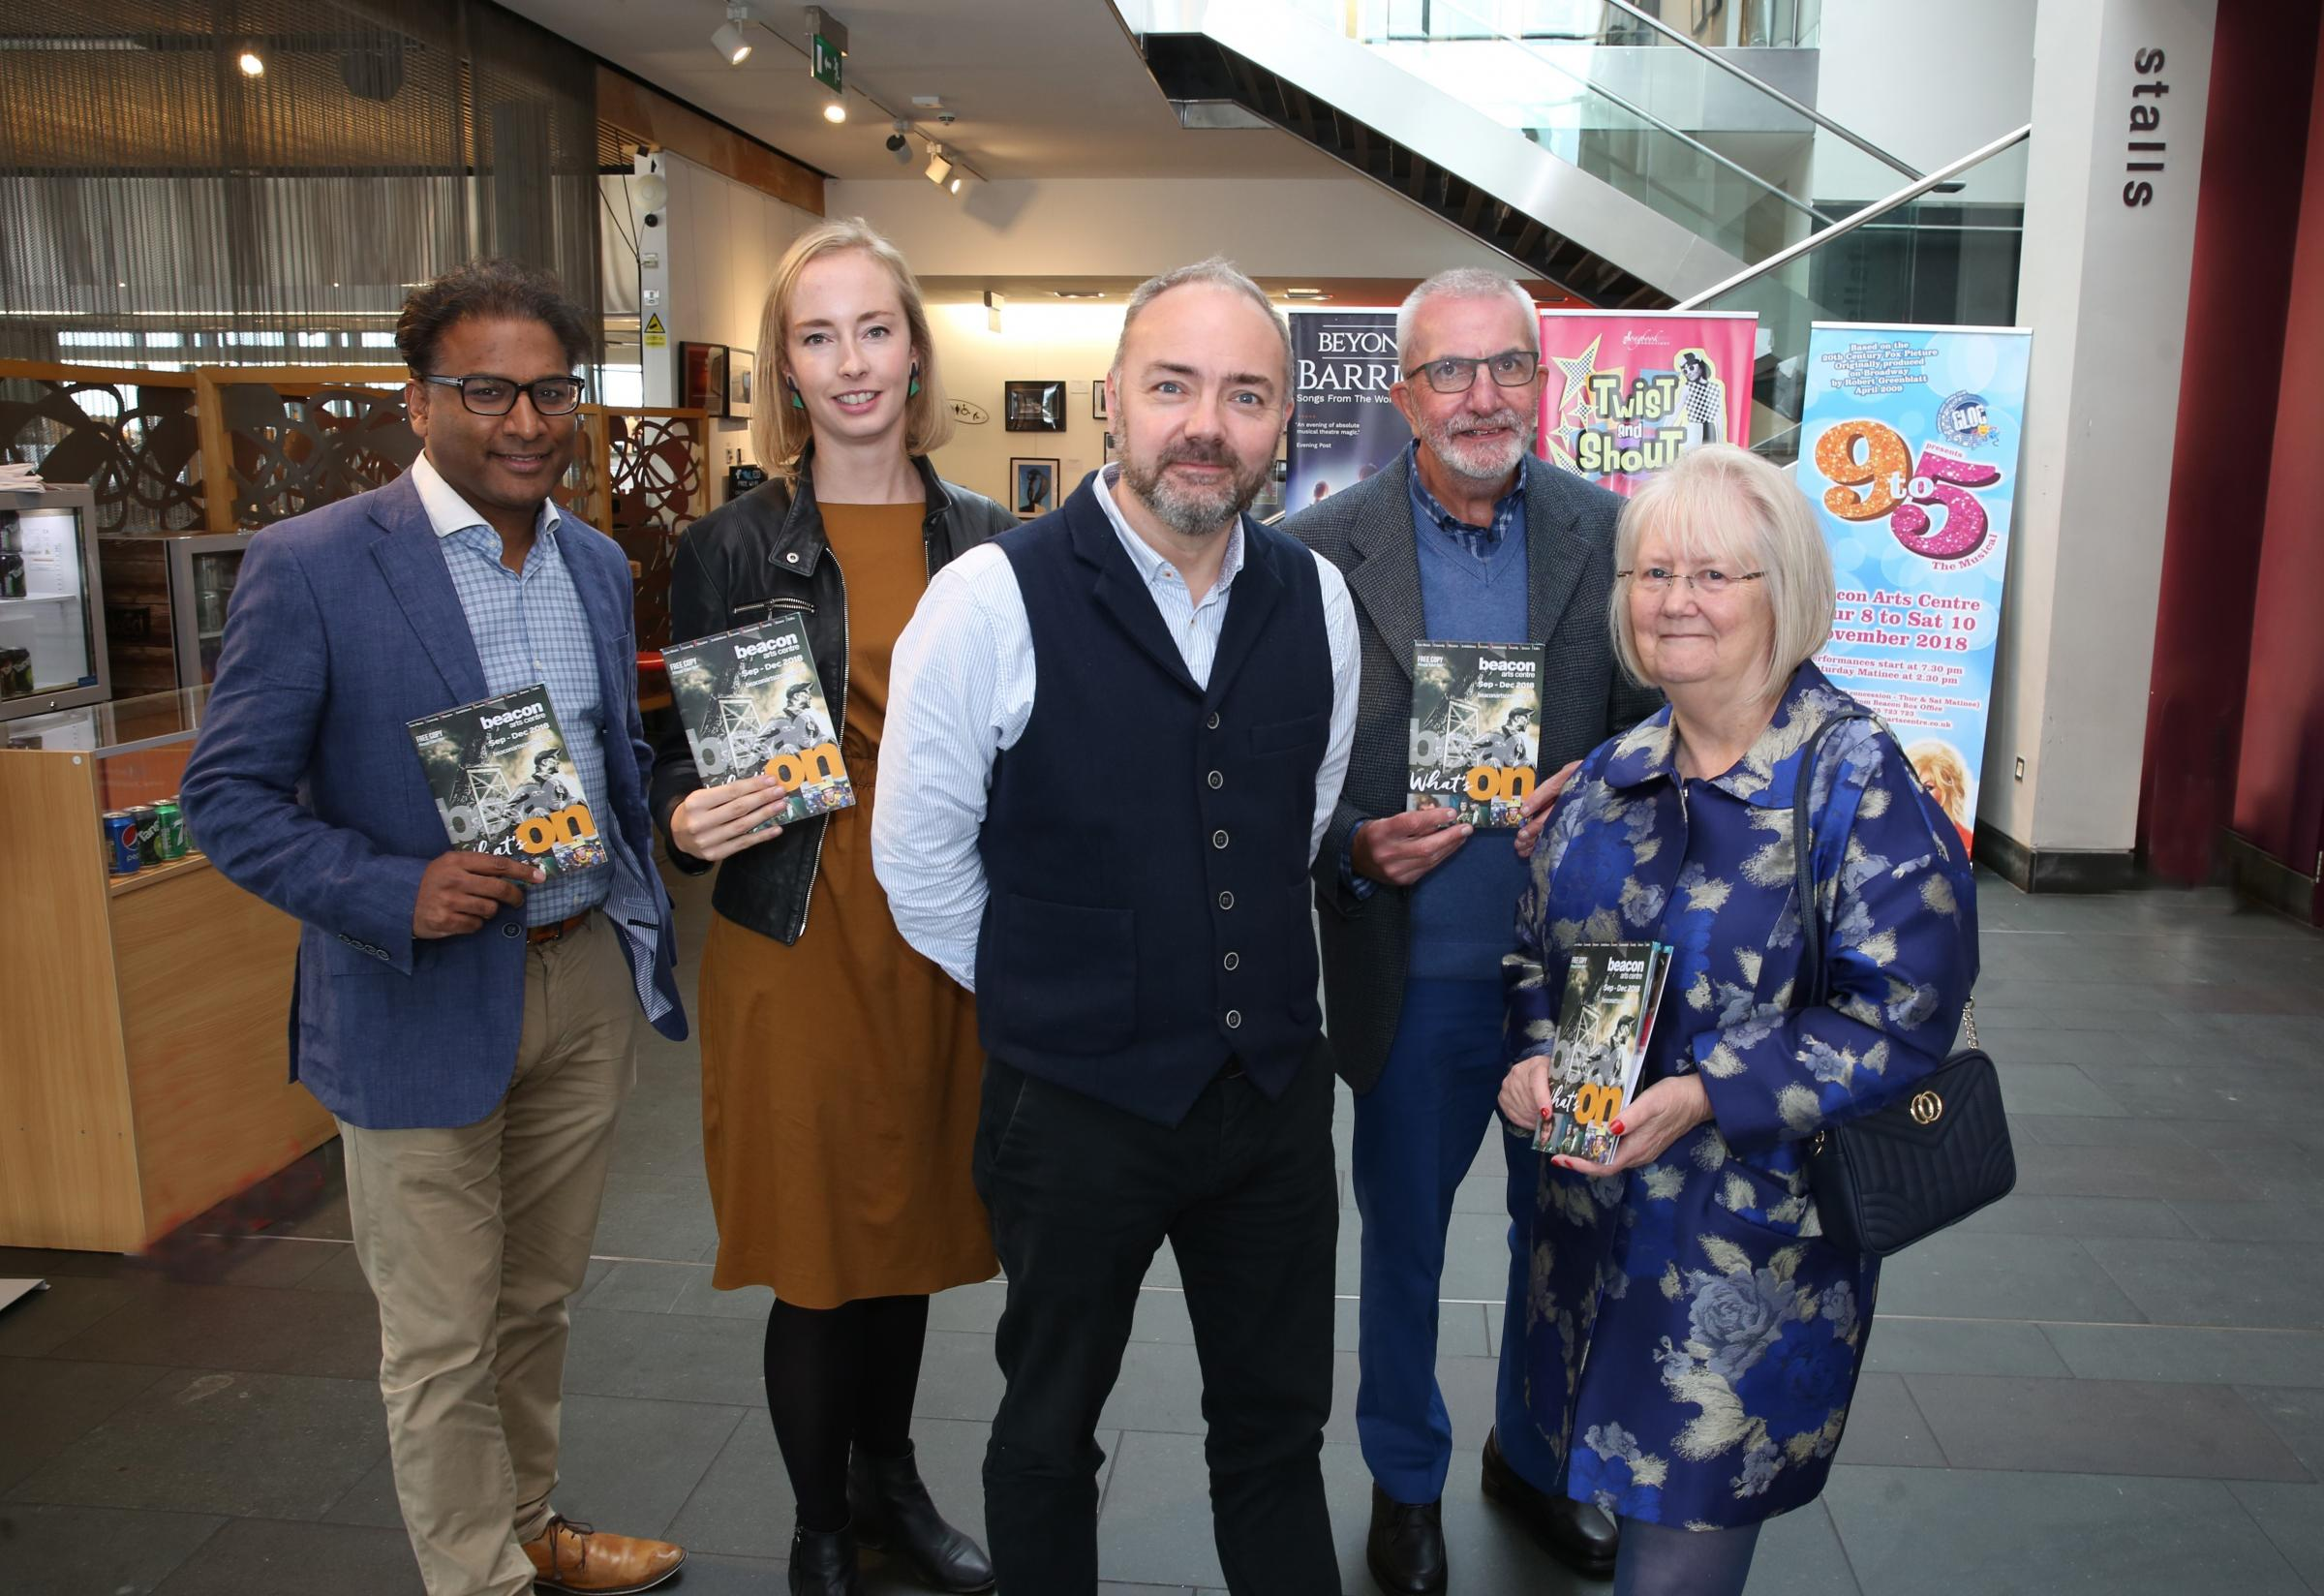 Beacon Arts Centre Greenock new board members. From left, Puneet Gupta, Jo Walmsley, chief executive Sean Paul O'Hare, Gerry Maguire and vice-chair Isabel Lind.